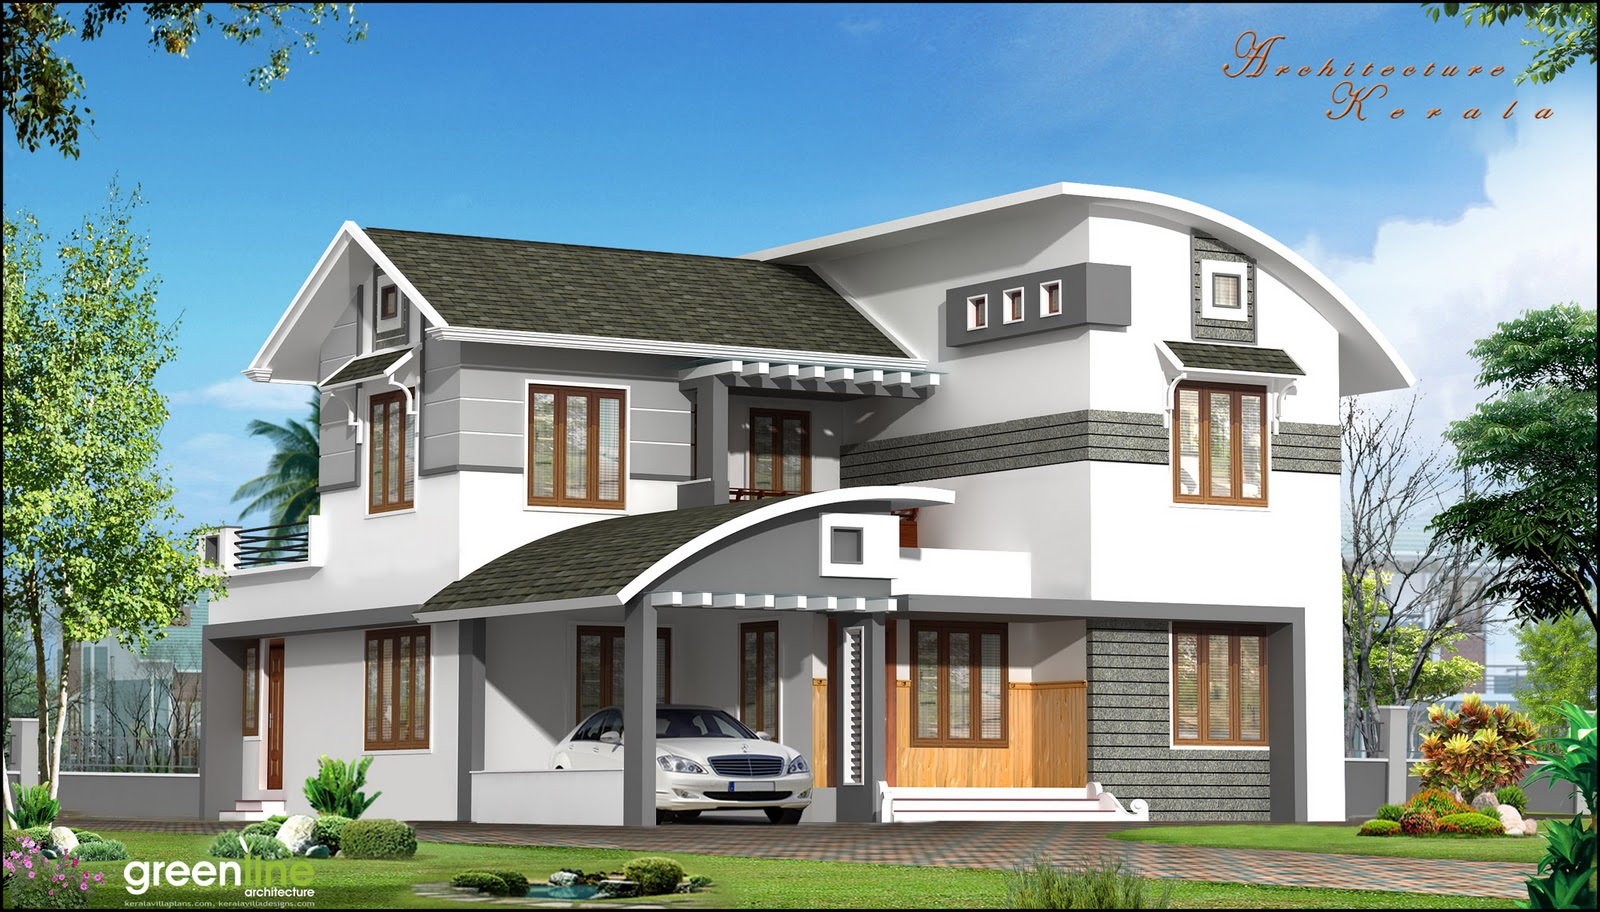 A beautiful house elevation architecture kerala for Kerala house plans and elevations